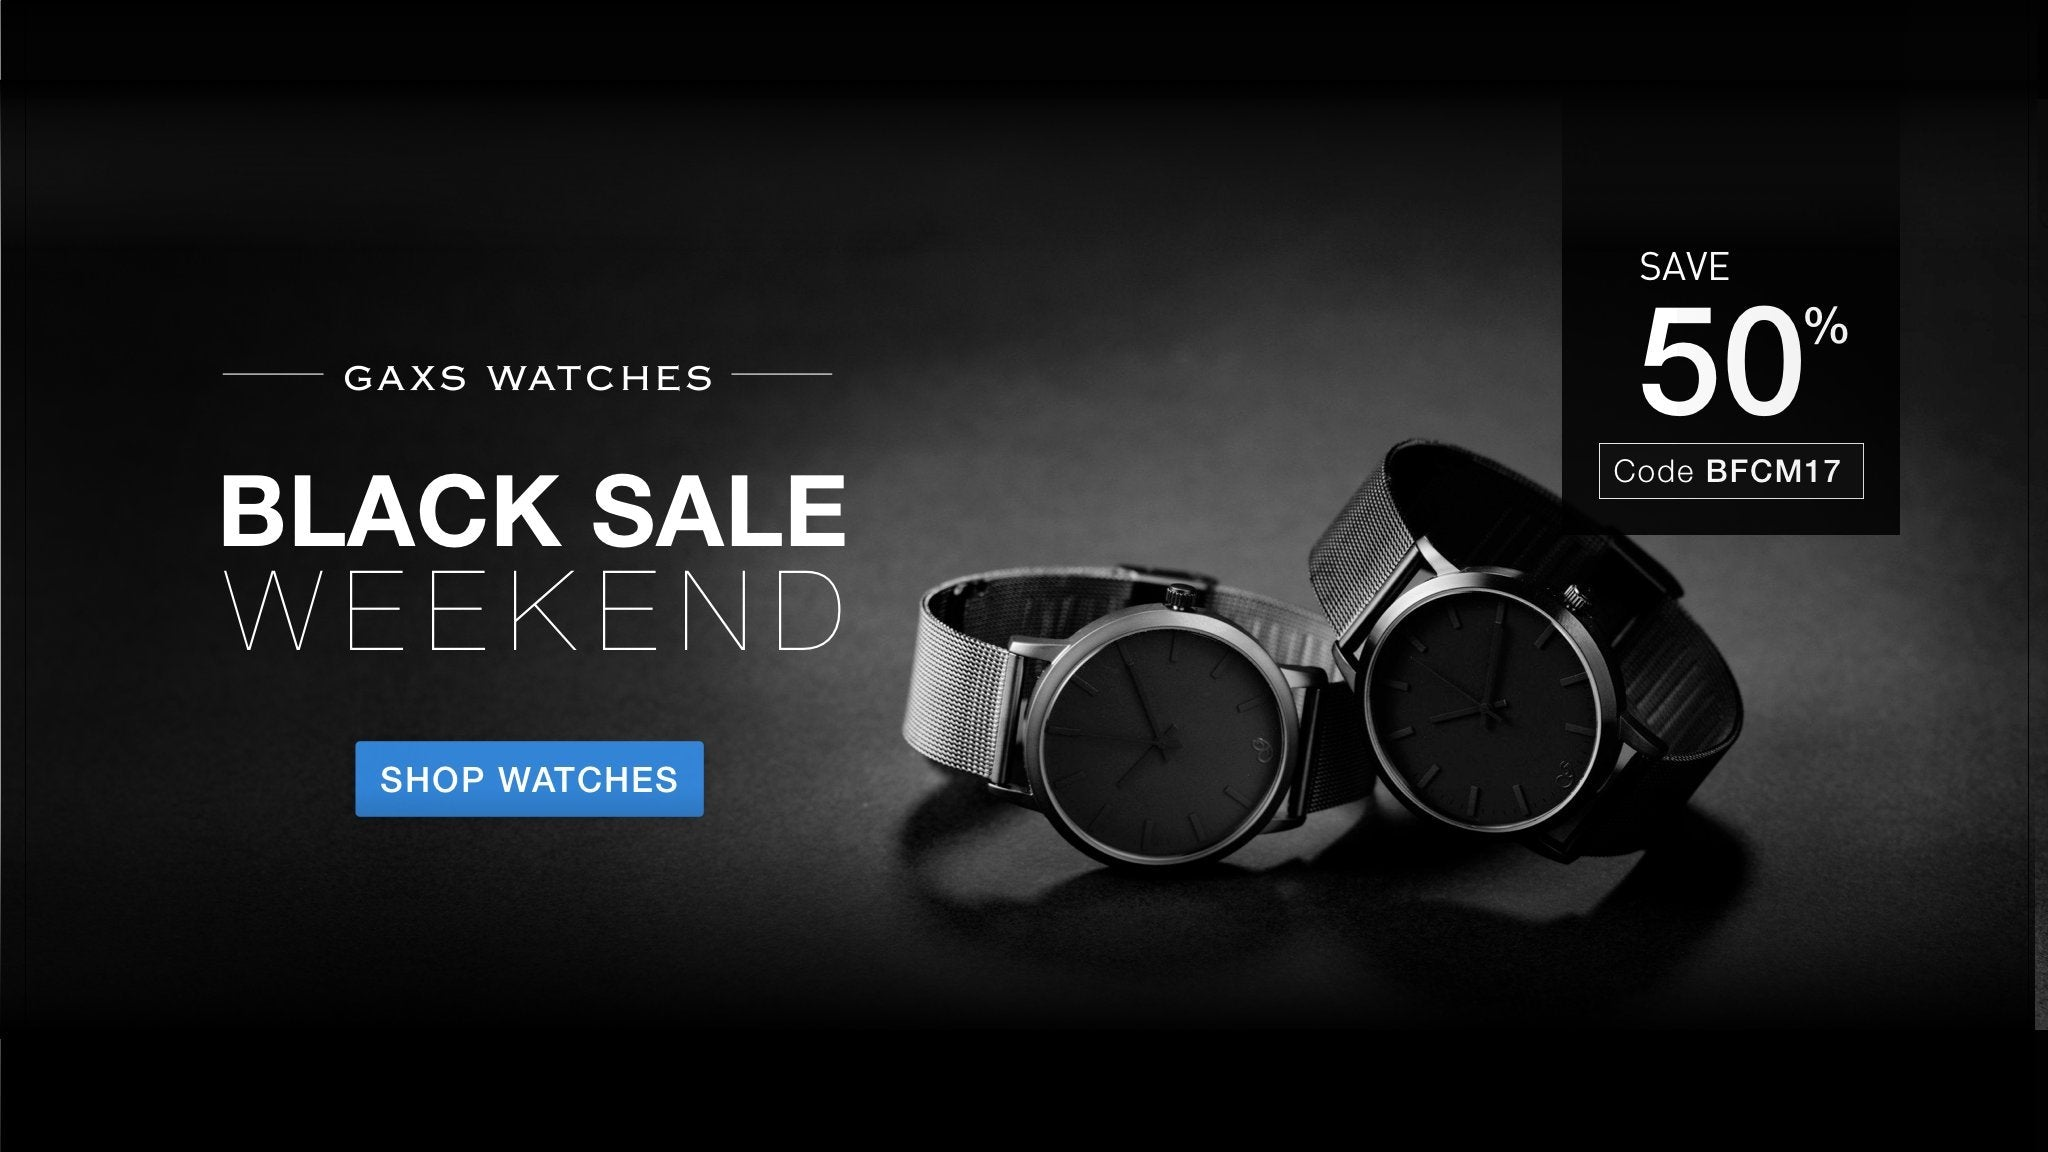 Stylish watches with free worldwide shipping